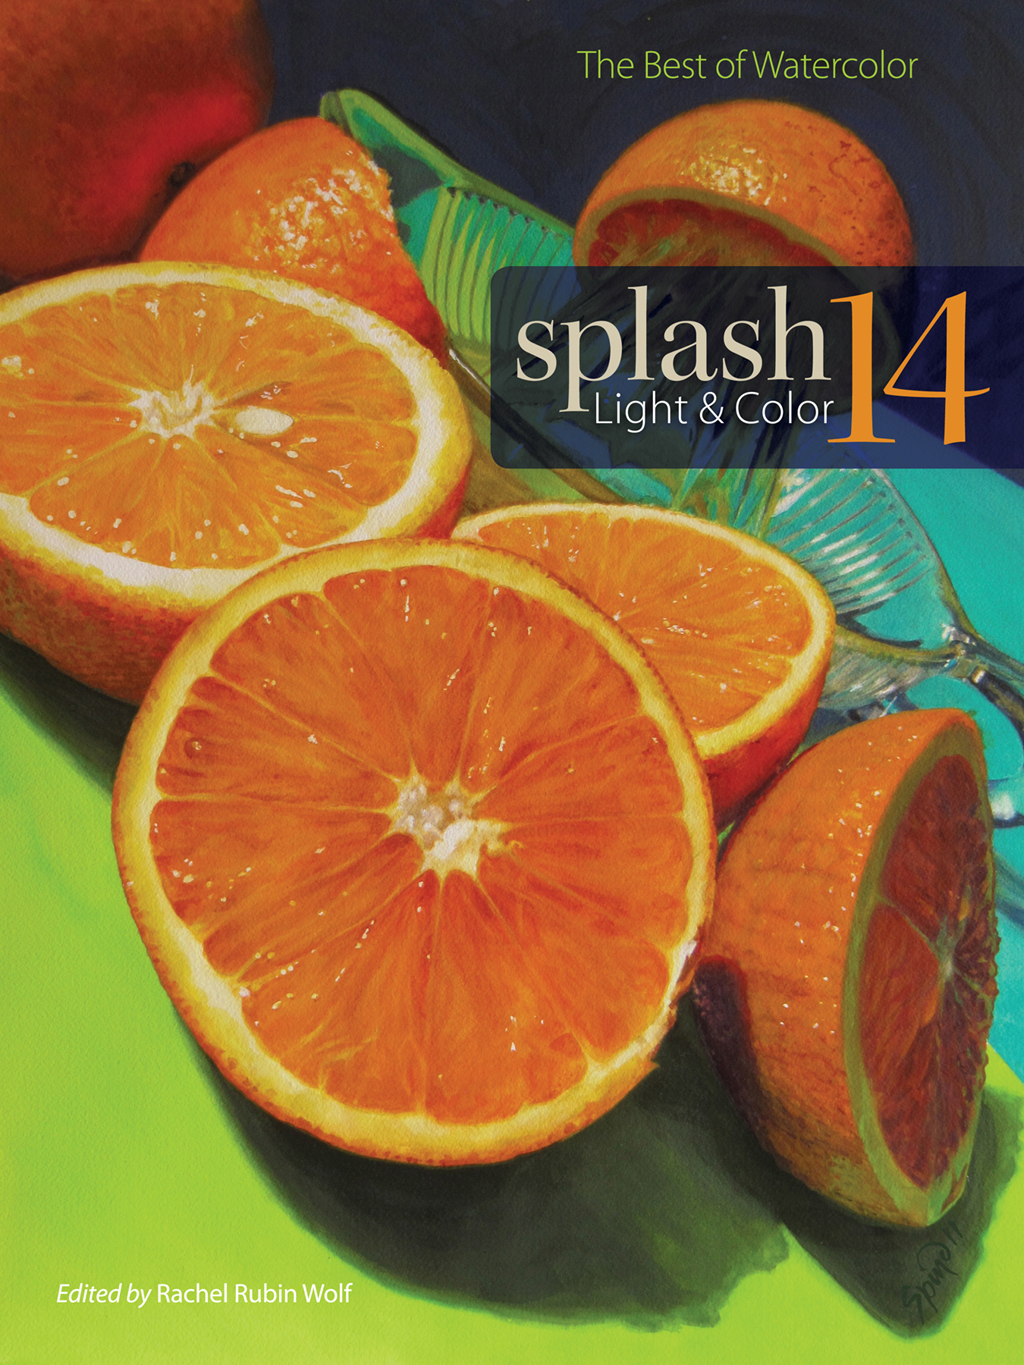 Splash 14 - The Best of Watercolor Light & Color